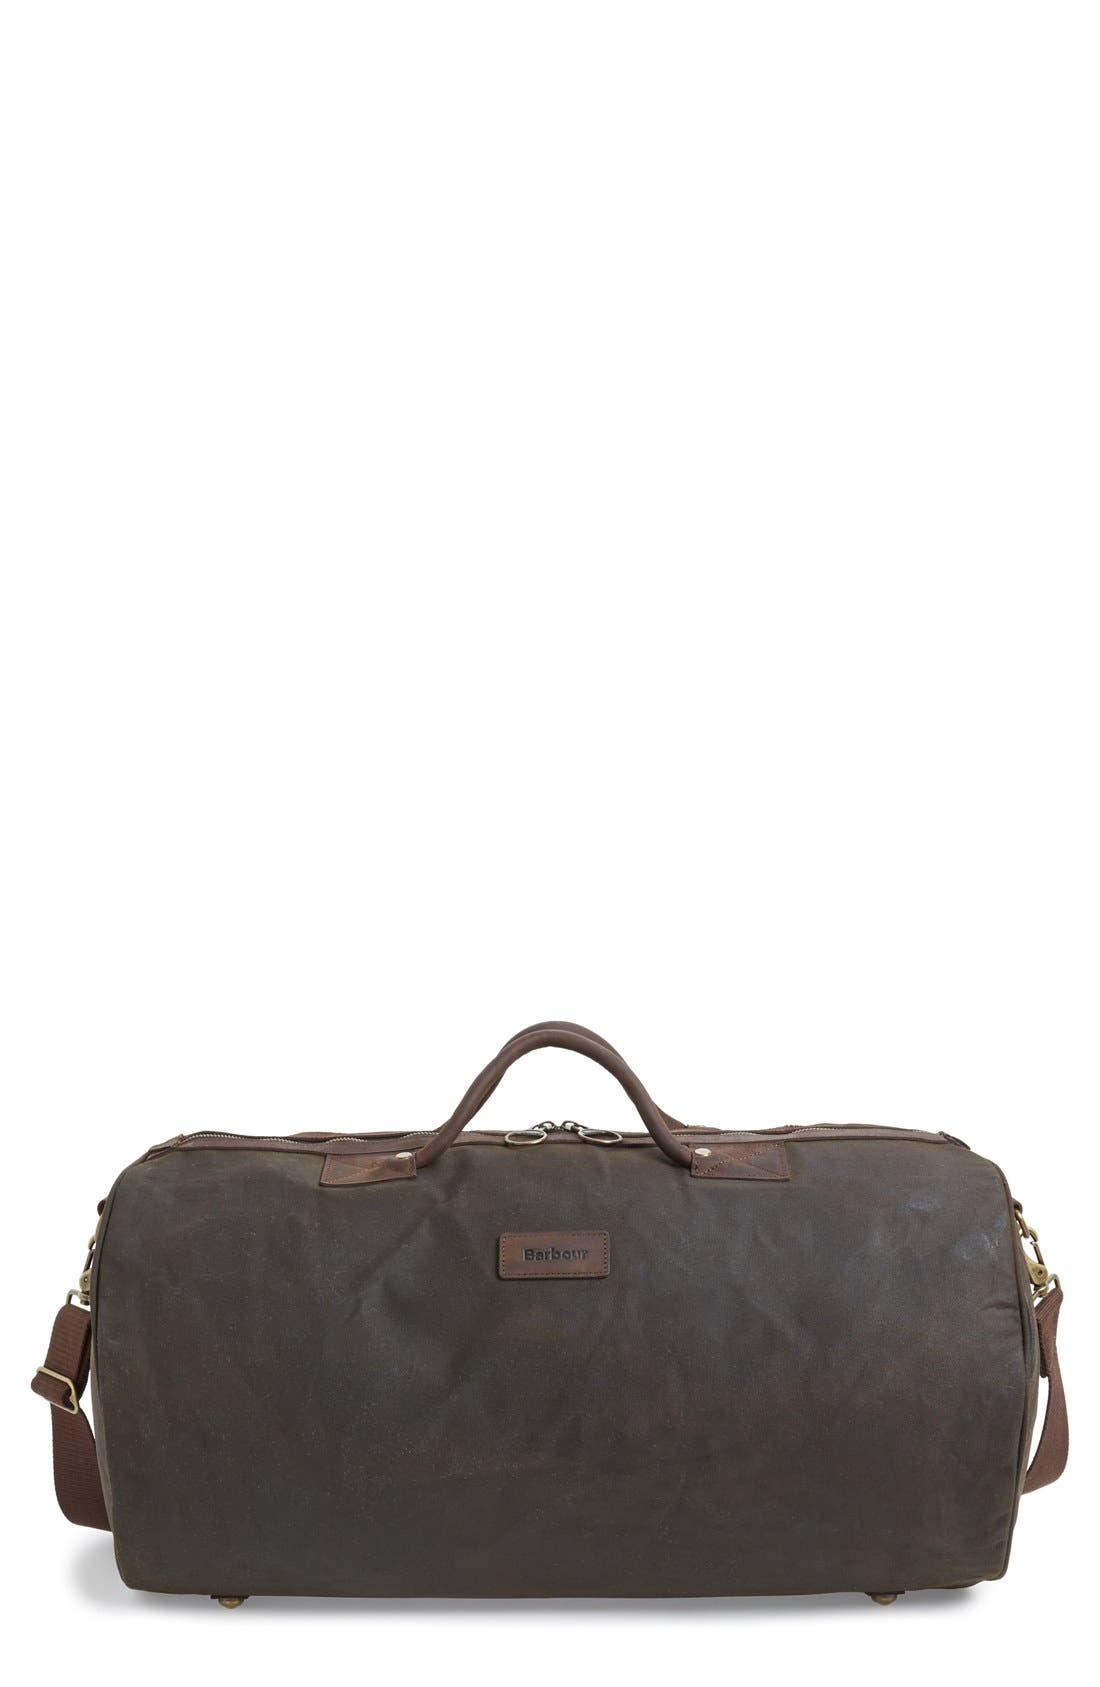 Waxed Canvas Duffel Bag,                             Main thumbnail 1, color,                             Olive